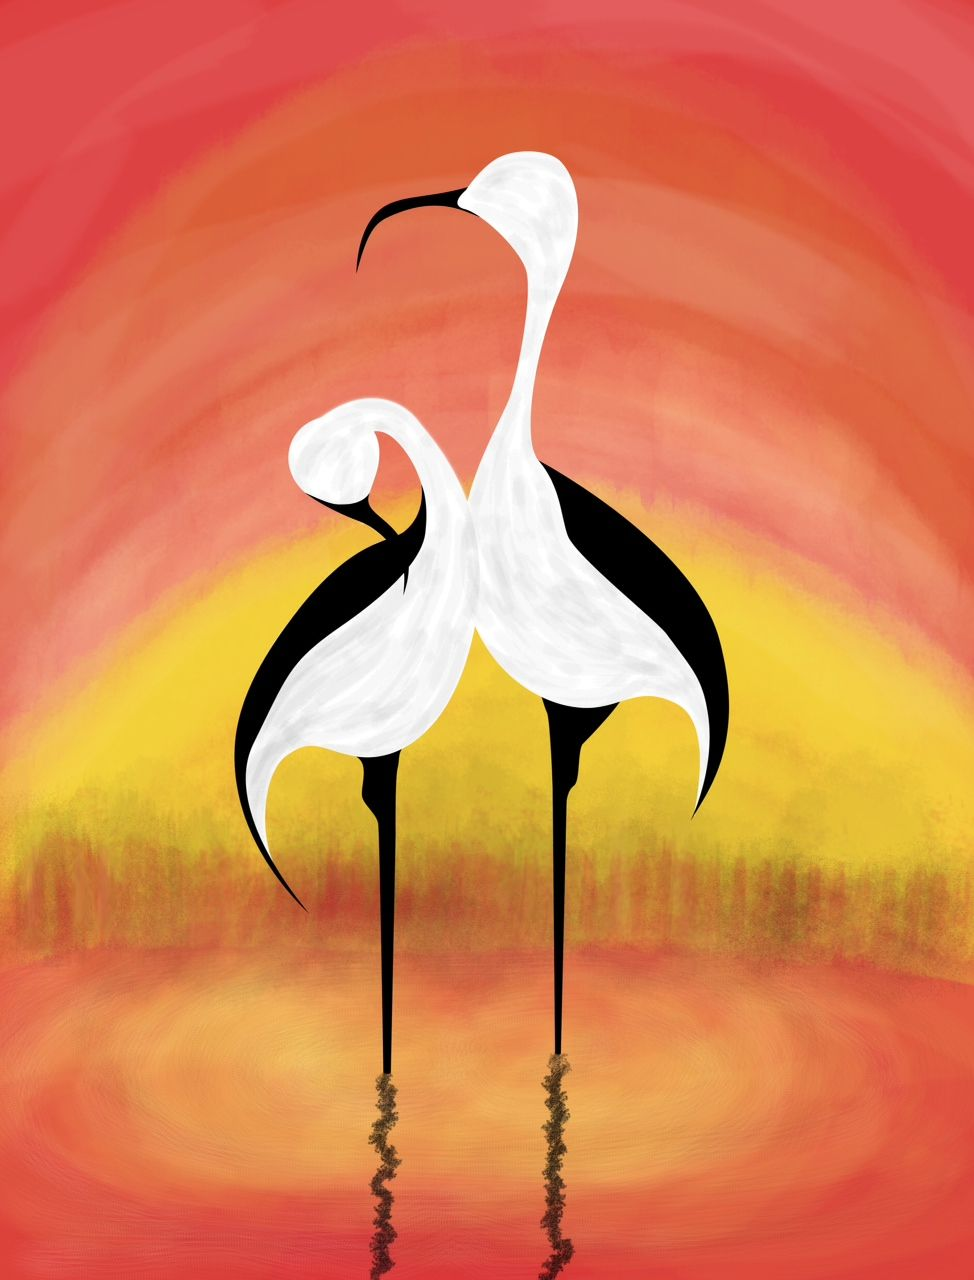 Cranes Symbolize Longevity In Feng Shui And Are Used As A Cure To